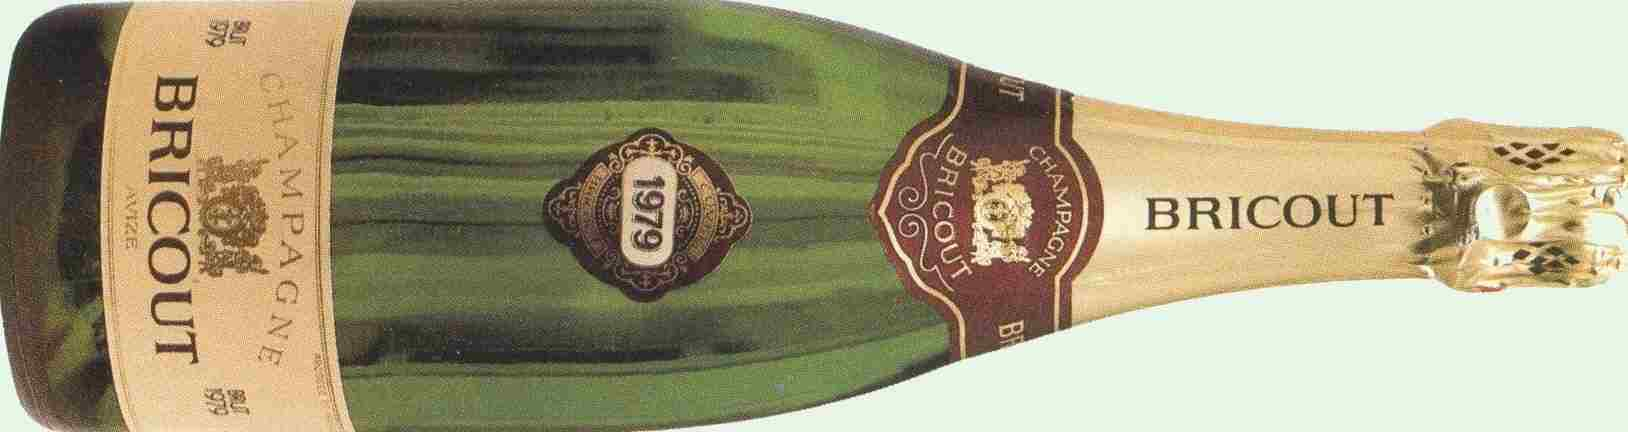 history of champagne Bricout founded in 1966 ------>